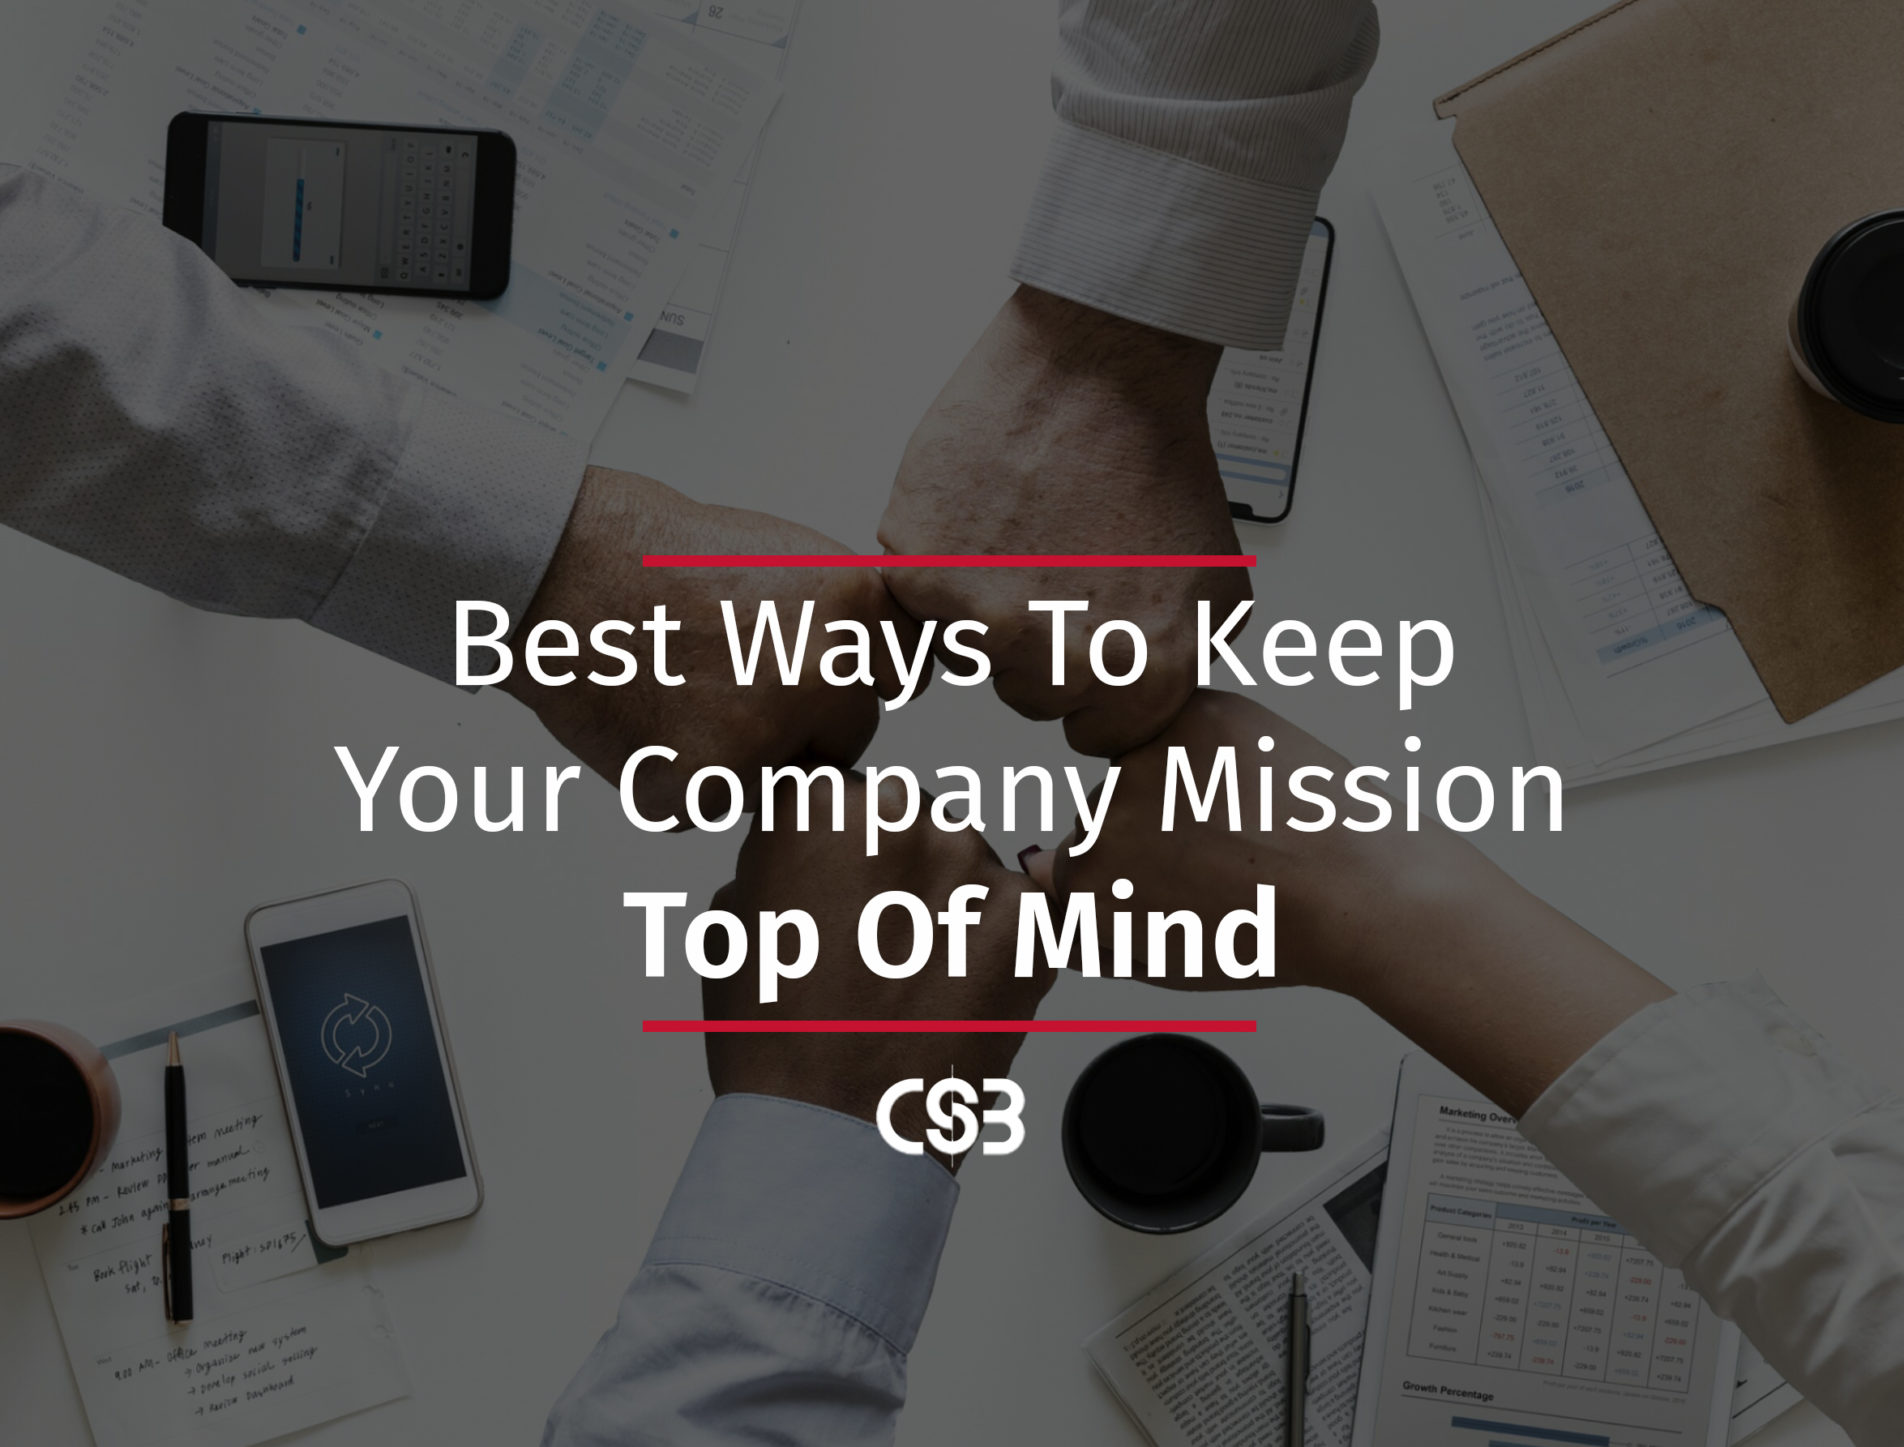 Keeping your company mission top of mind